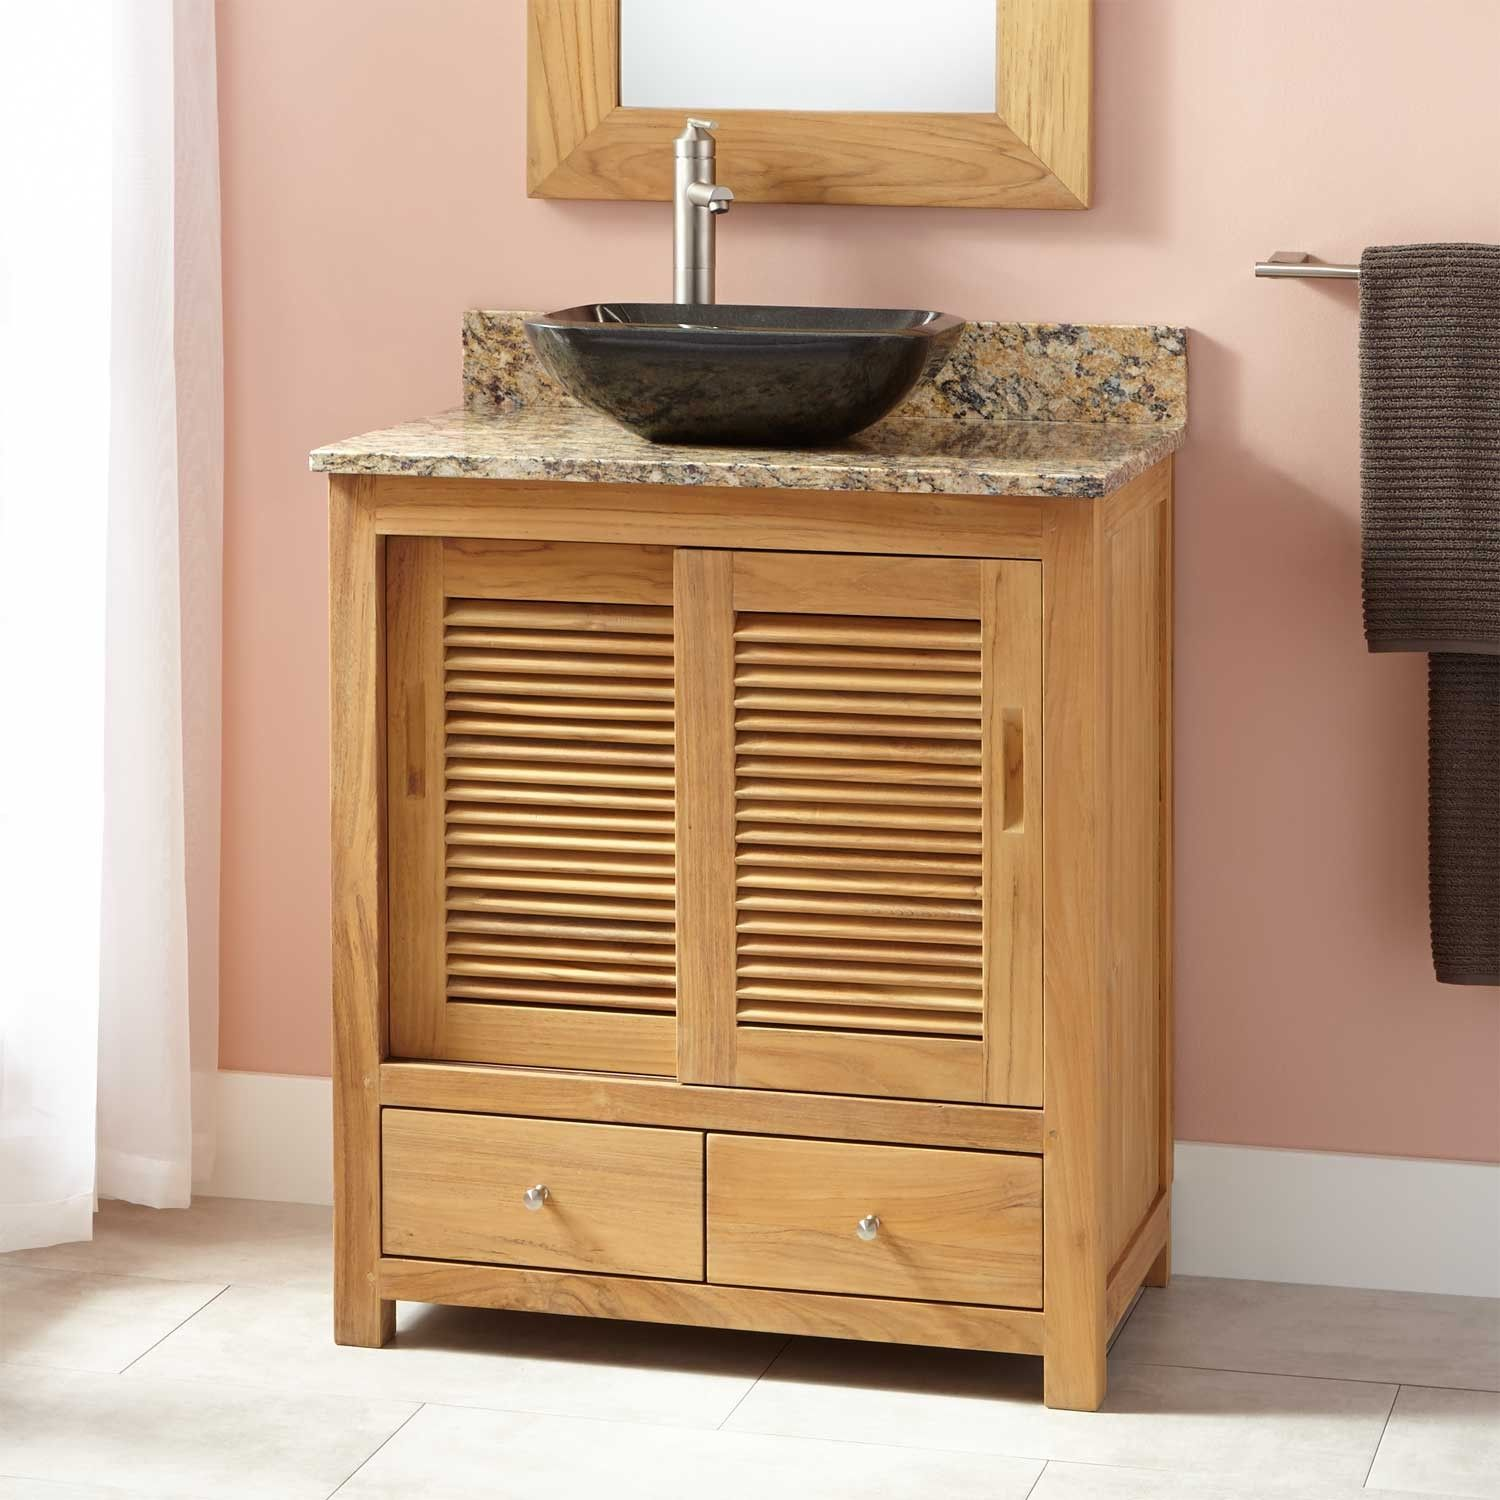 "30""narrowdeptharreyteakvesselsinkvanity  Bathroom Remodel Simple Narrow Depth Bathroom Vanity Design Ideas"